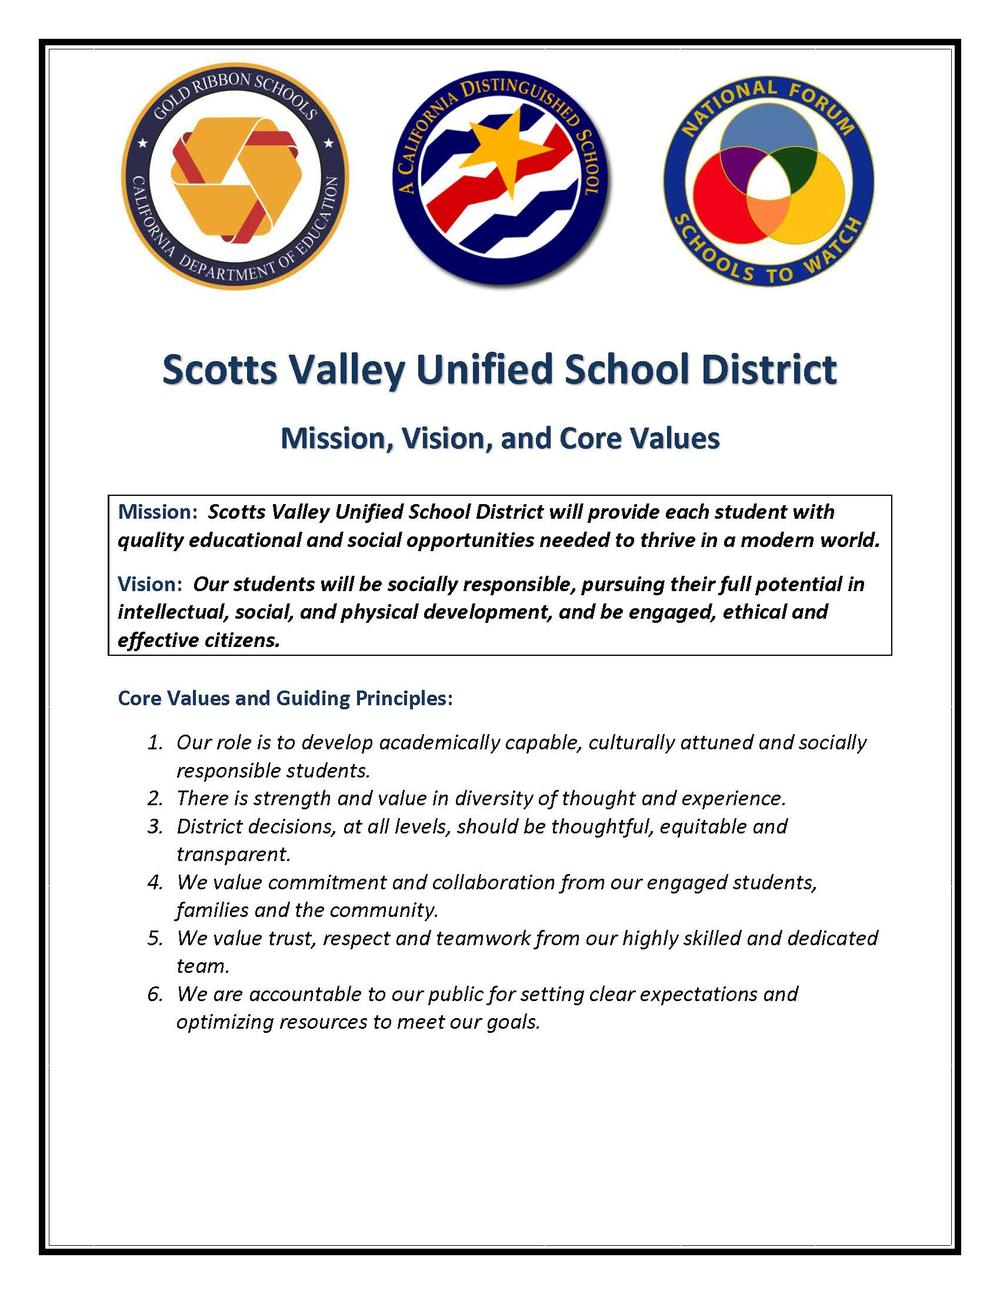 SVUSD Mission, Vision, Core Values